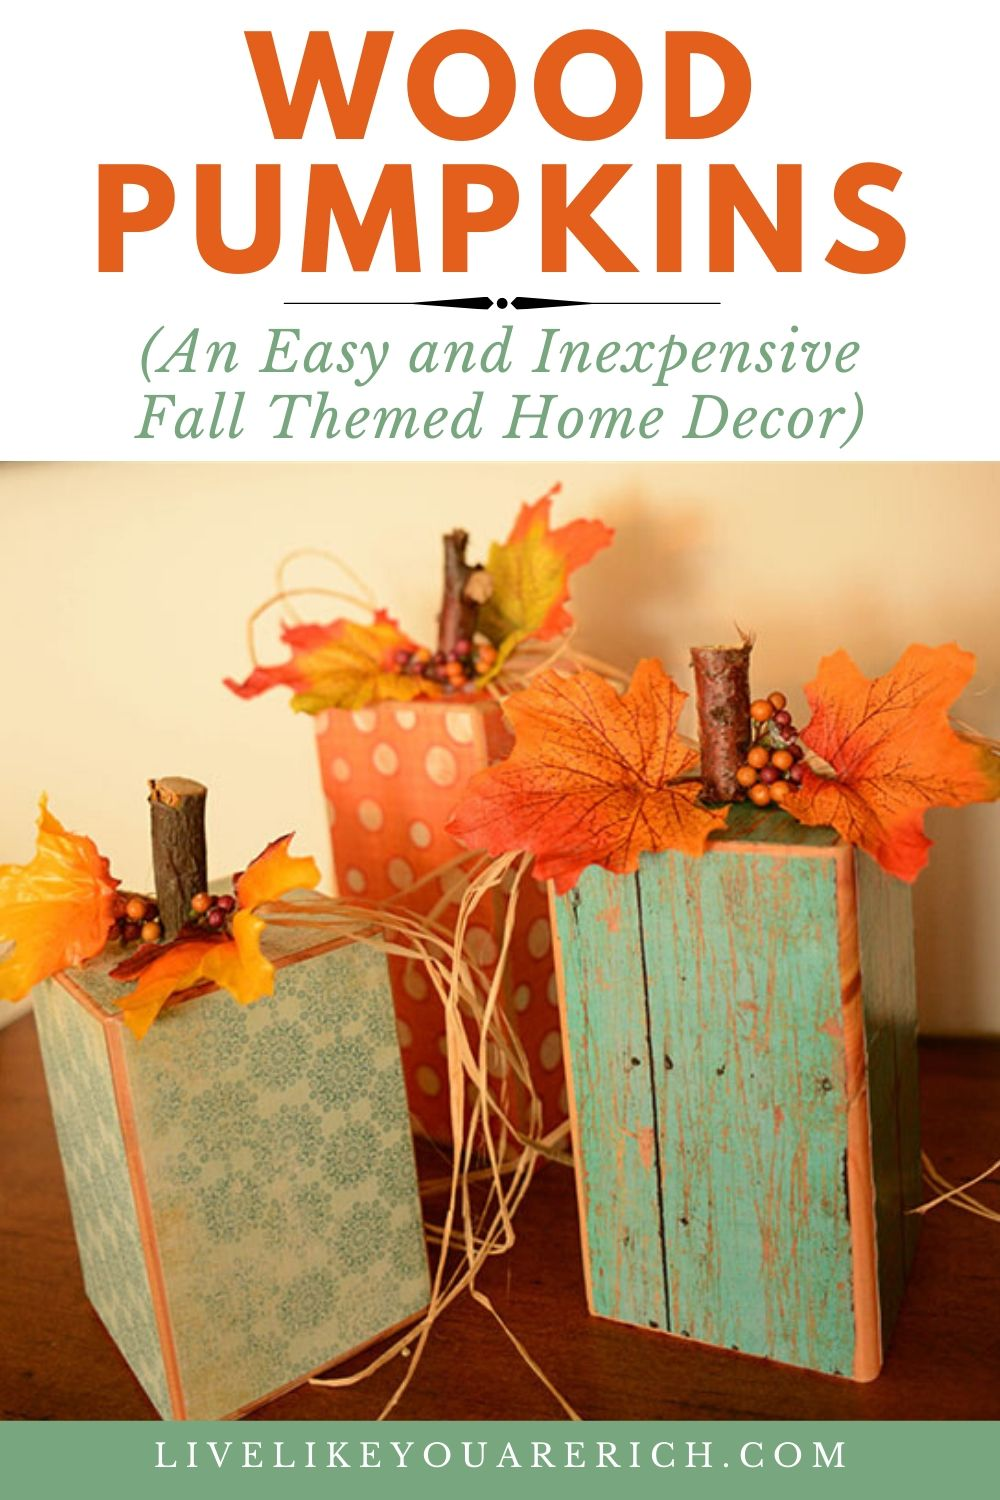 This Fall themed wood pumpkins will work as decor for Halloween, Fall, andThanksgiving. They are very inexpensive and they are easy to make.